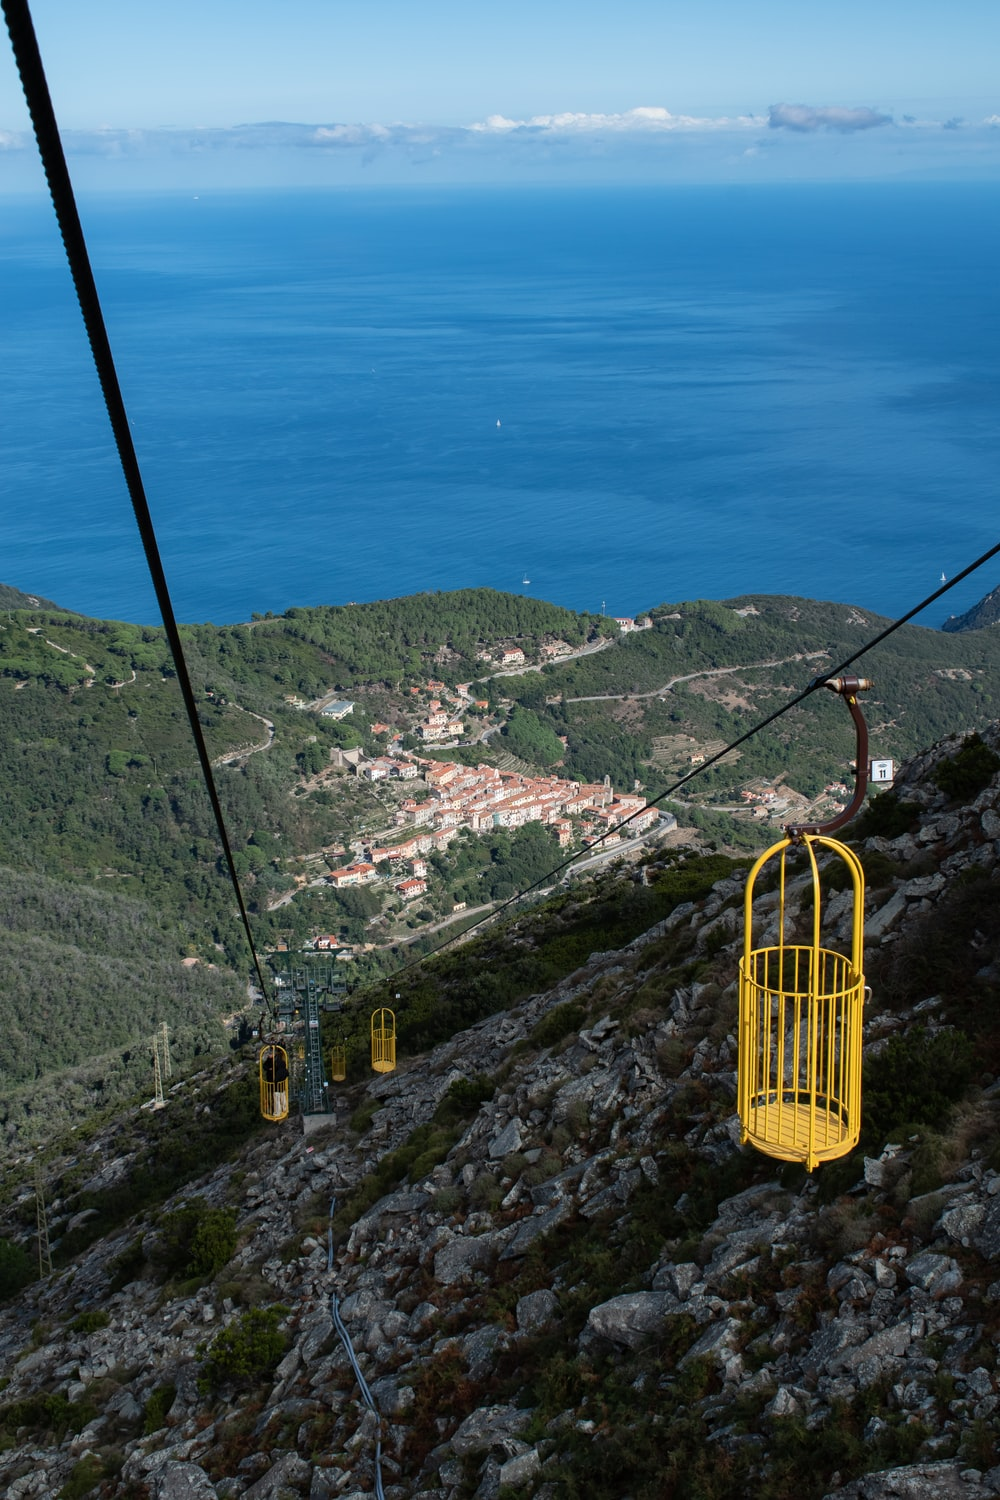 yellow cable car over green trees and mountains during daytime